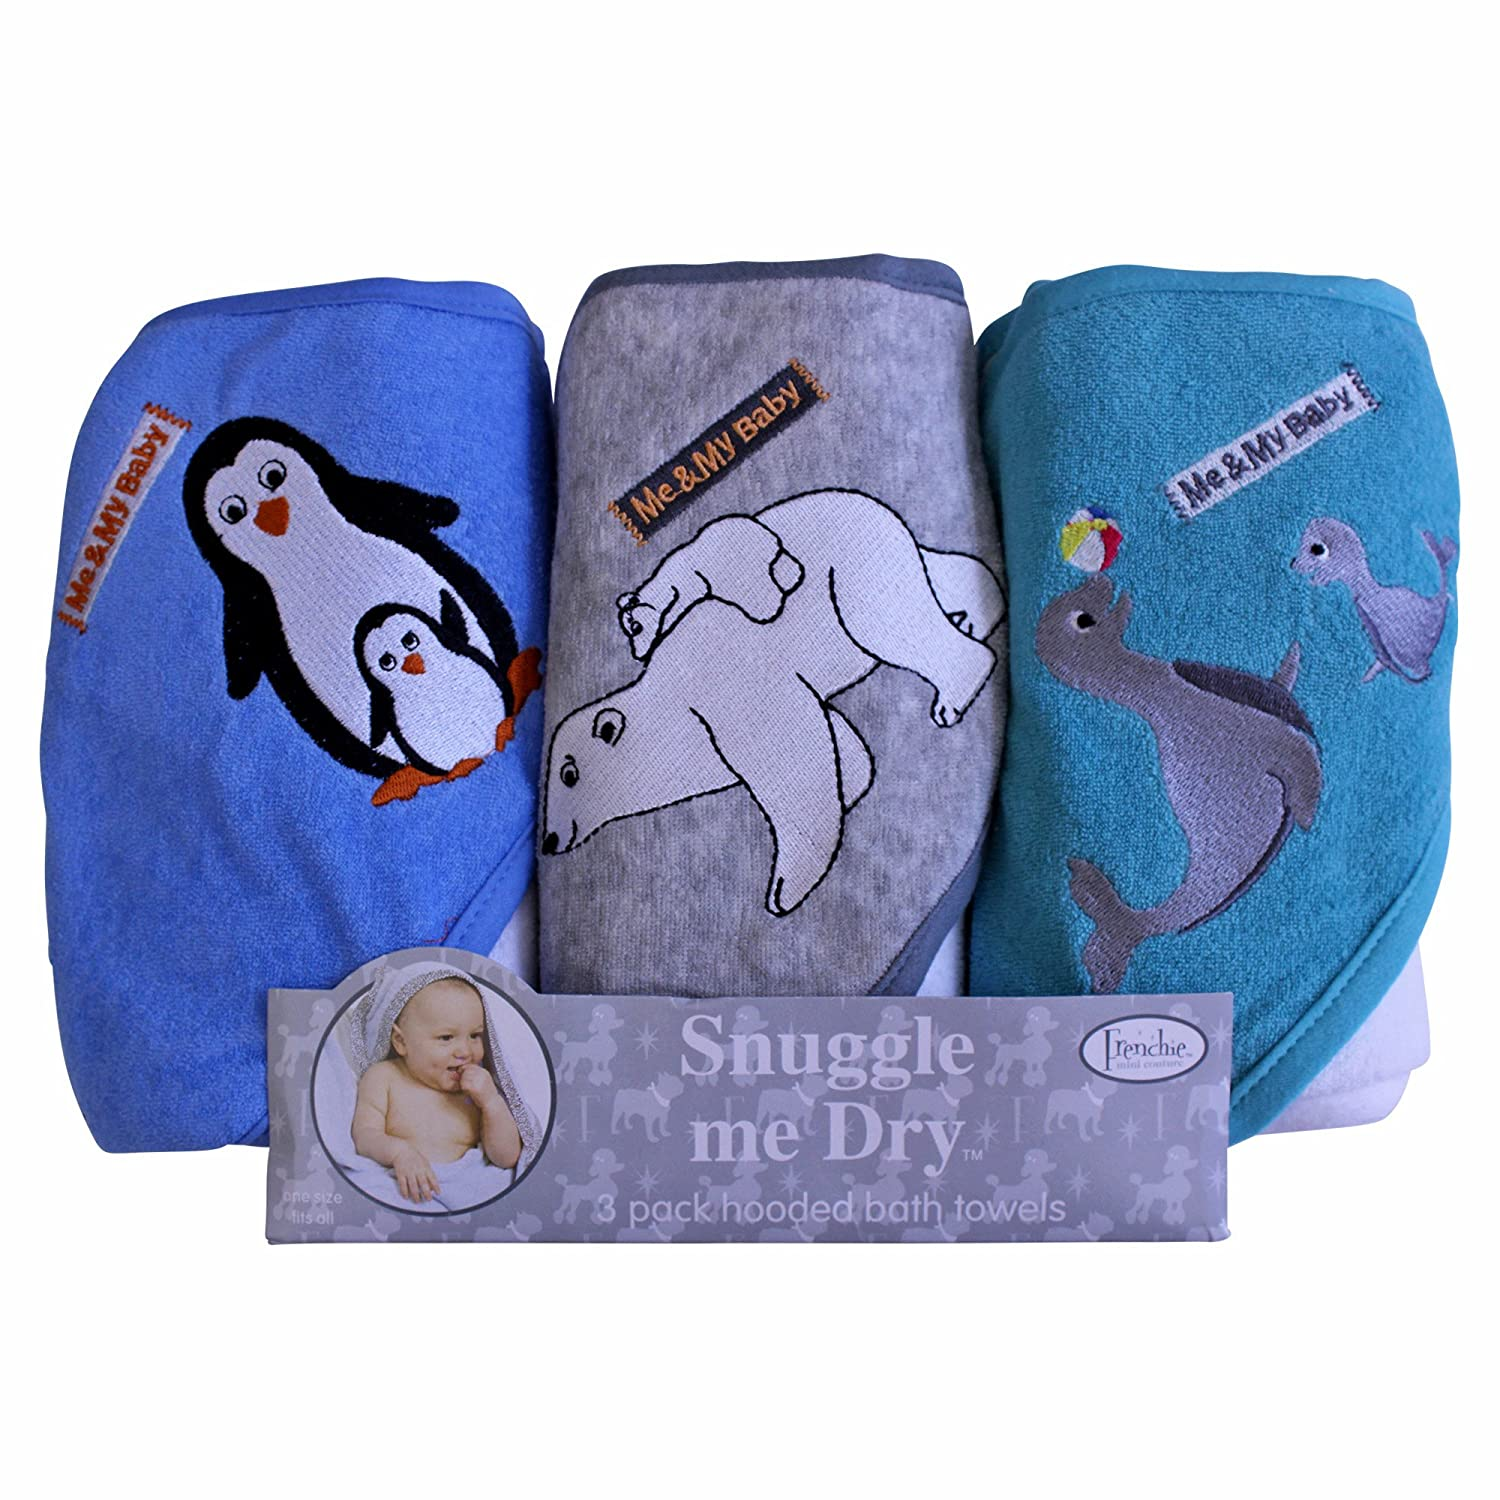 Wild Animal Hooded Bath Towel Set Frenchie Mini Couture Girl 3 Pack